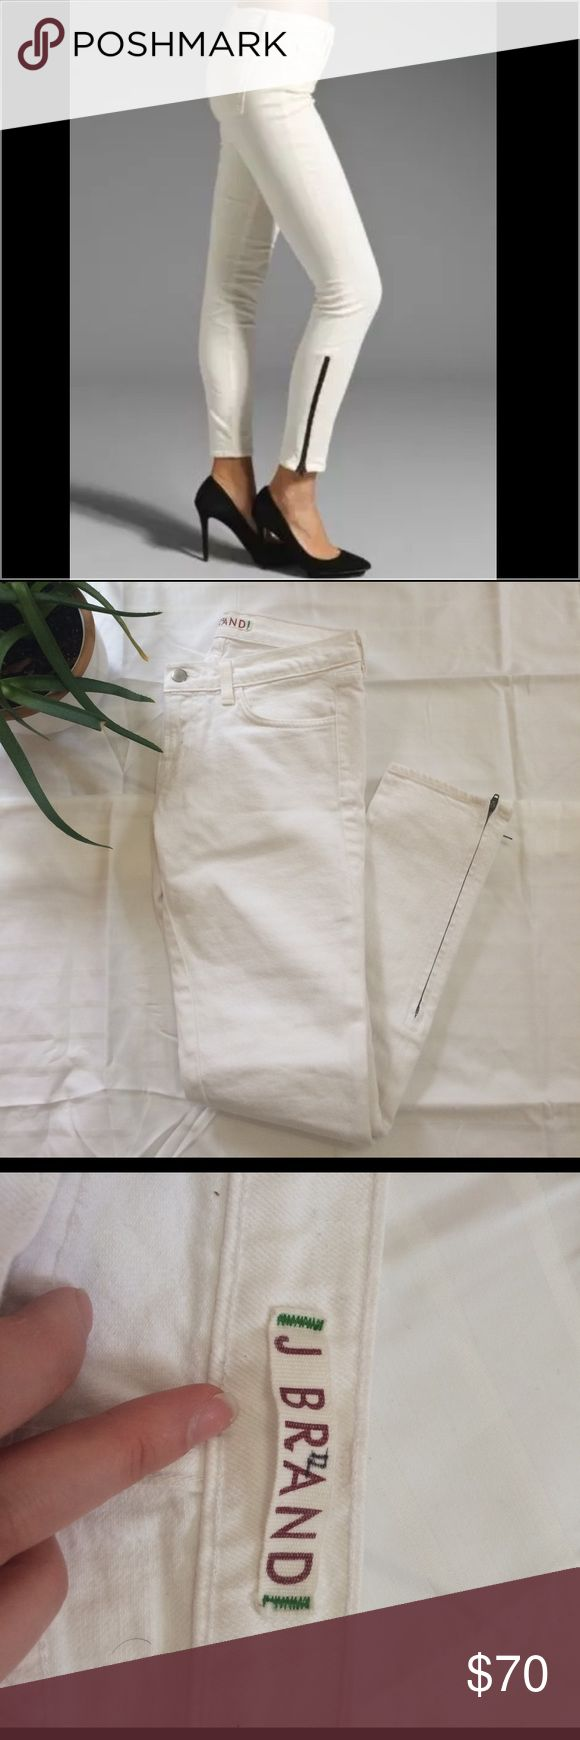 "HP🎊 J Brand white skinnies ankle zipper size 27 The best white skinnies. Inseam is 27, dark Zippers along the ankles. Perfect with heels for a night out or laid back with some sneaks or flats! Style is ""the deal"" has little writing on the inner label. J Brand Jeans Ankle & Cropped"